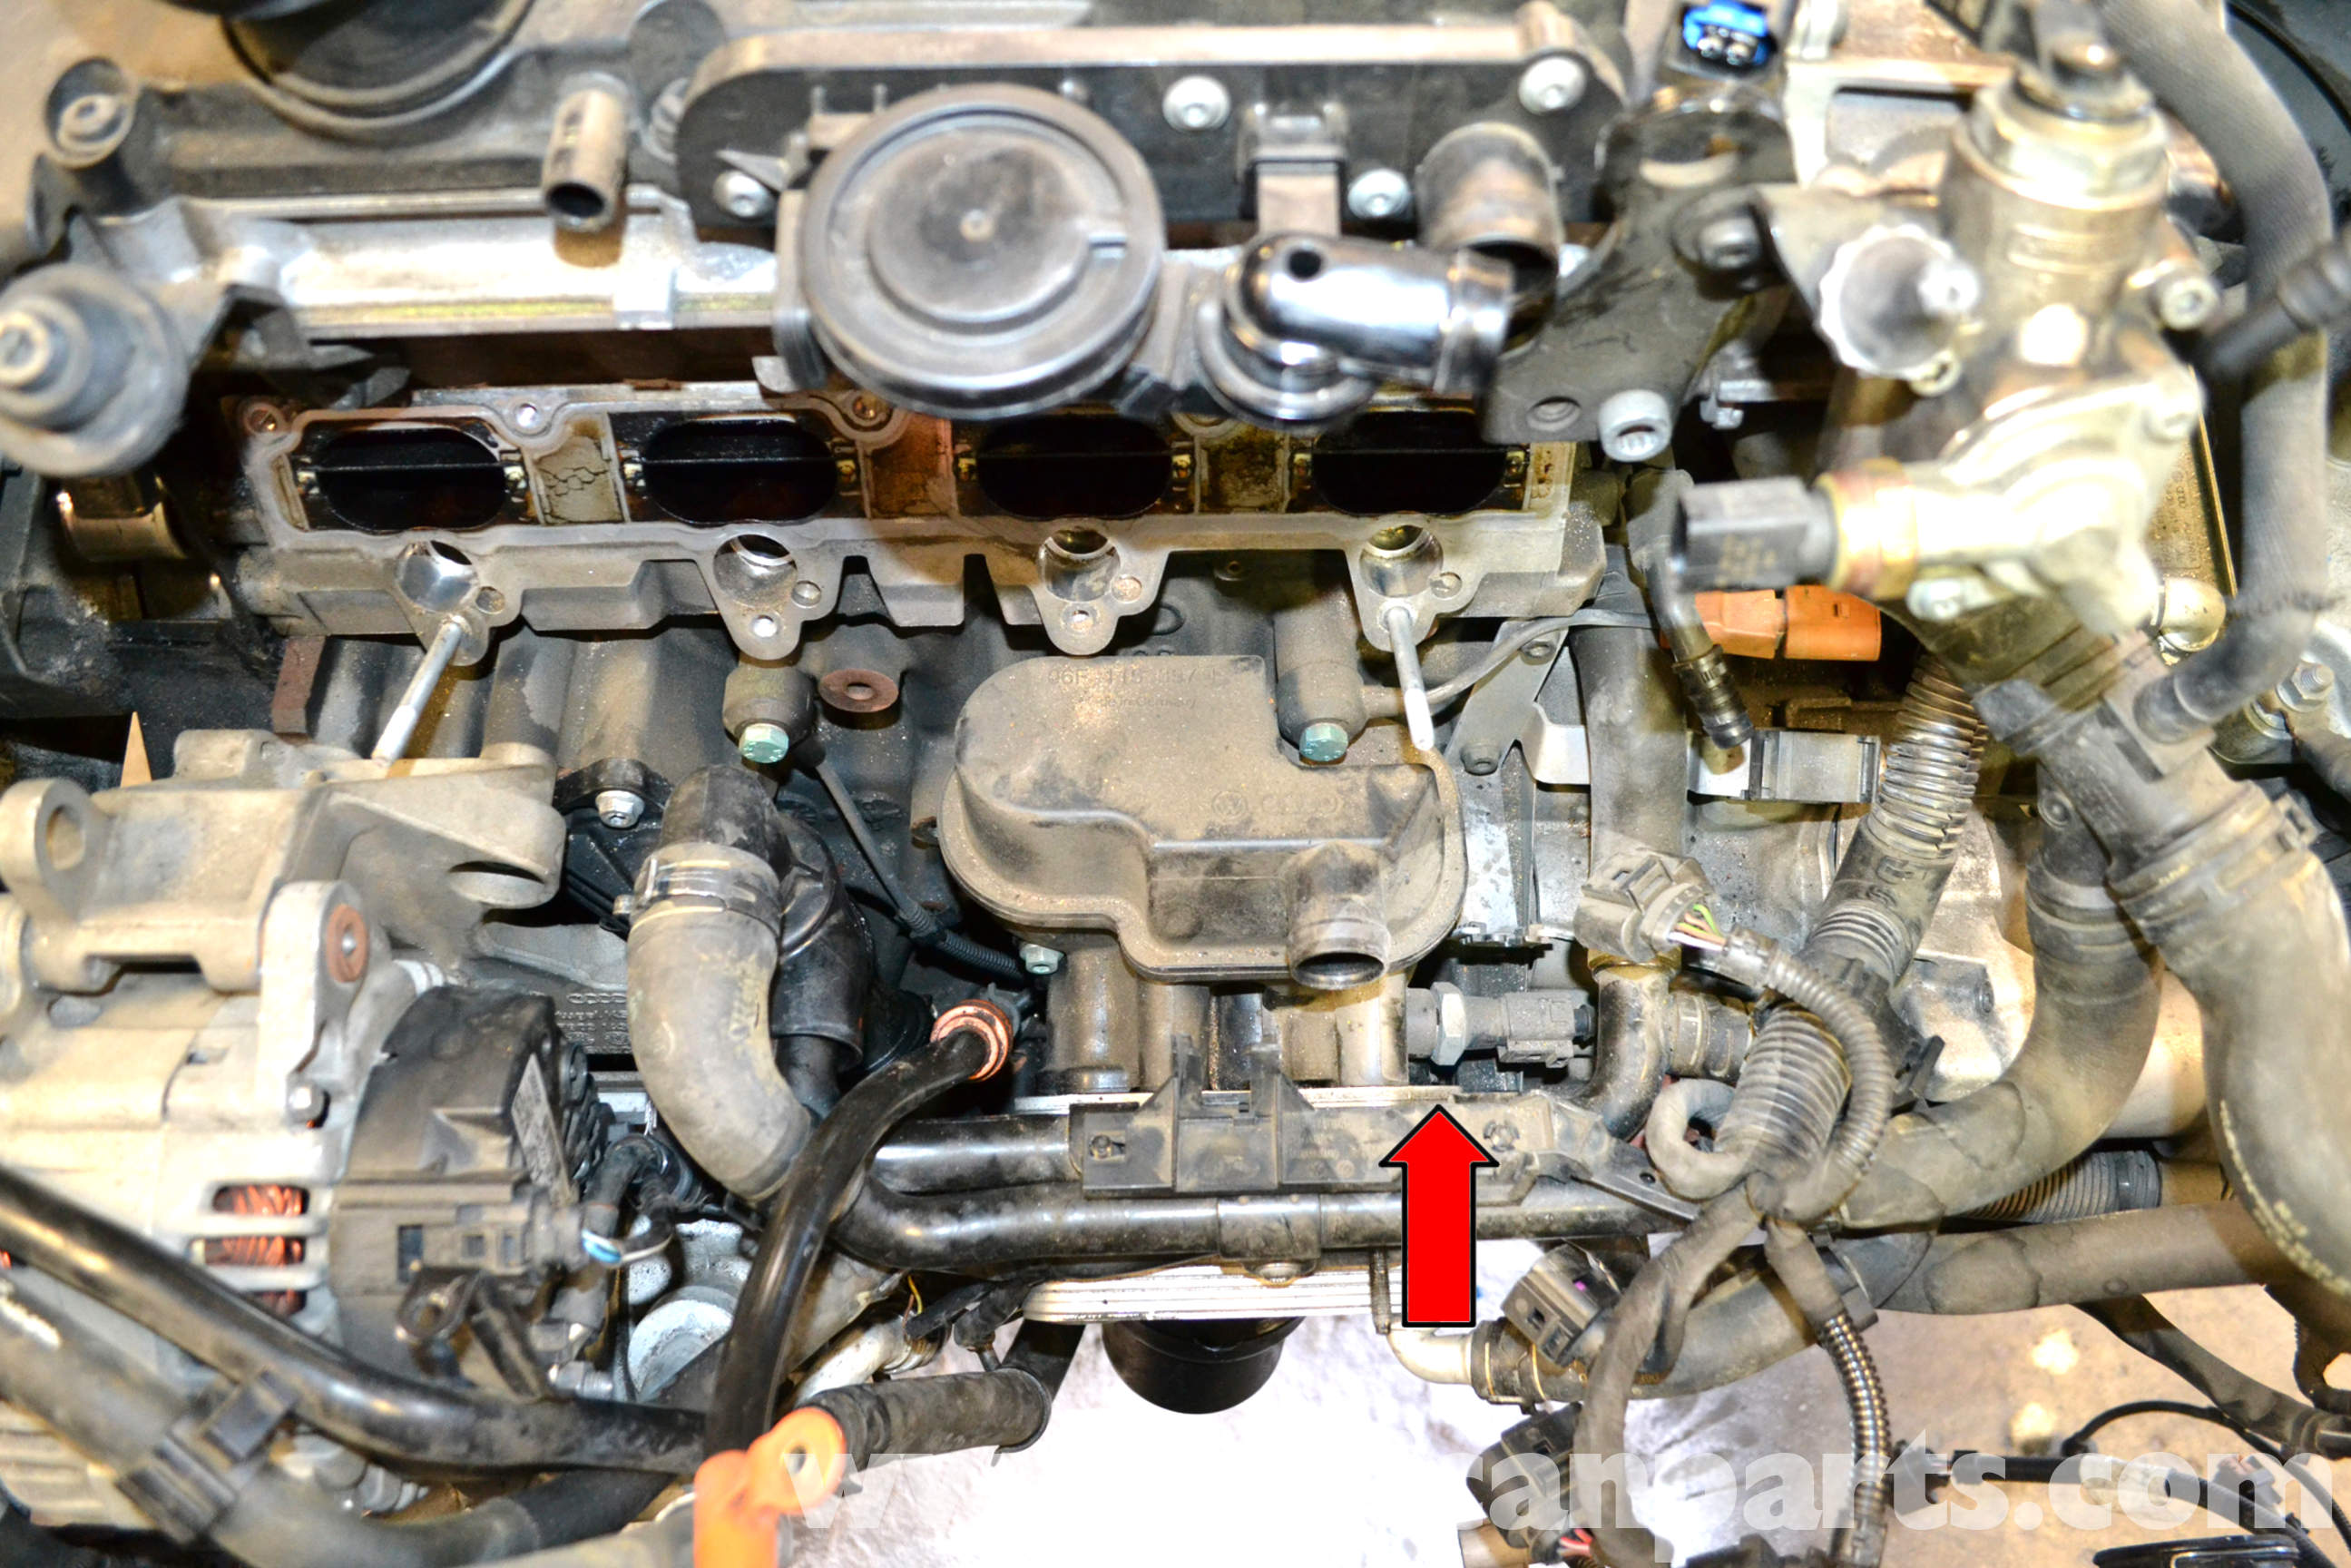 Chrysler Pt Cruiser Engine 5 additionally 2004 Mazda 6 Wiring Harness besides 2009 Scion Xd Fuse Box Diagram moreover Watch besides 40894 Fuel Line Leaks Look Your Pt. on pt cruiser engine diagram